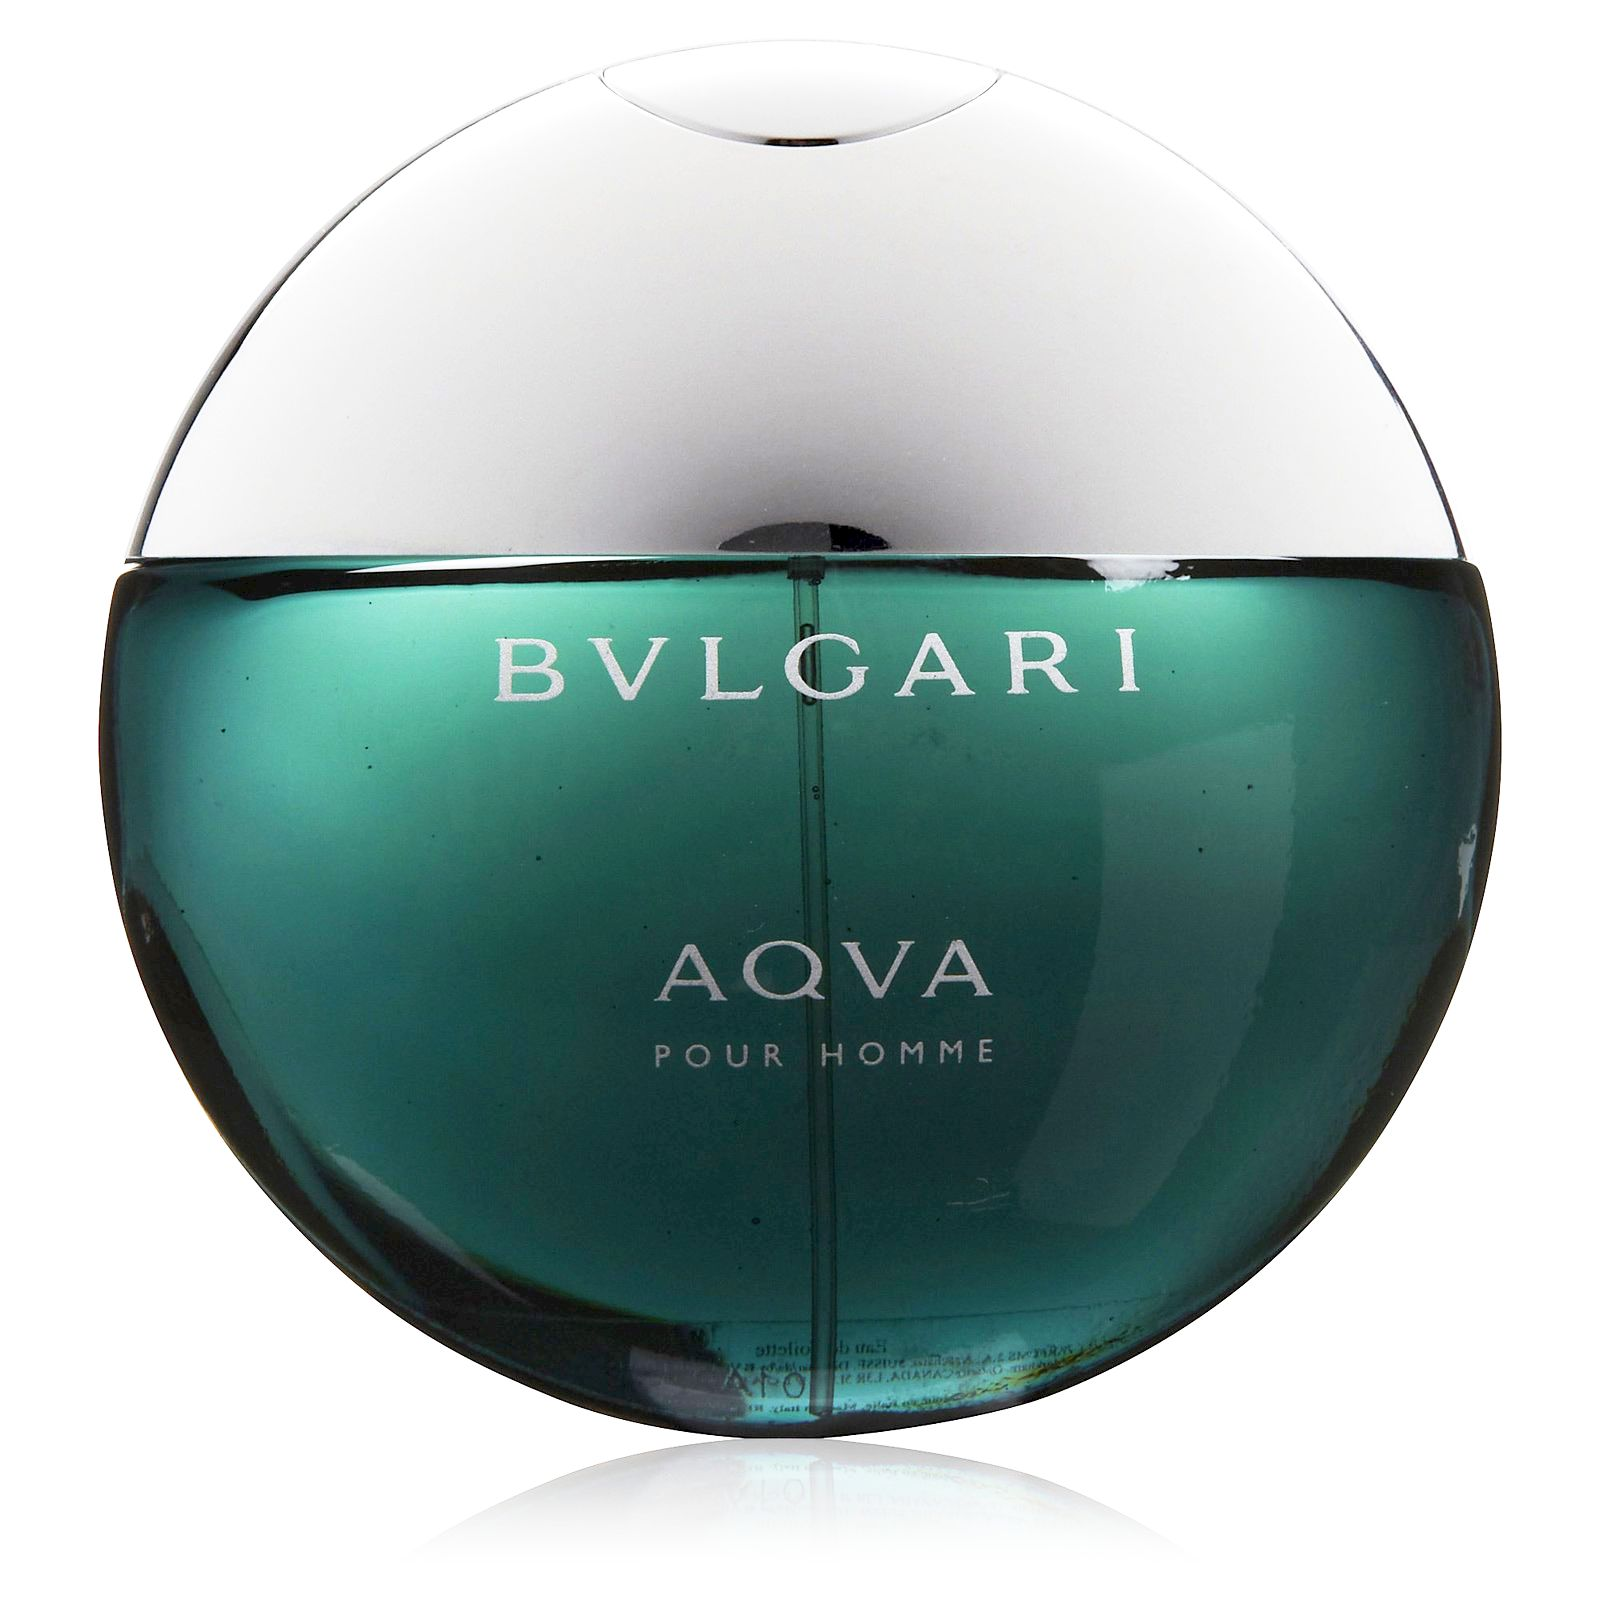 3e84ab825f9 Bvlgari Aqva Pour Homme. Never mind what Tania Sanchez said about it. Never  mind what anyone else says about it. To any and all of my loyal